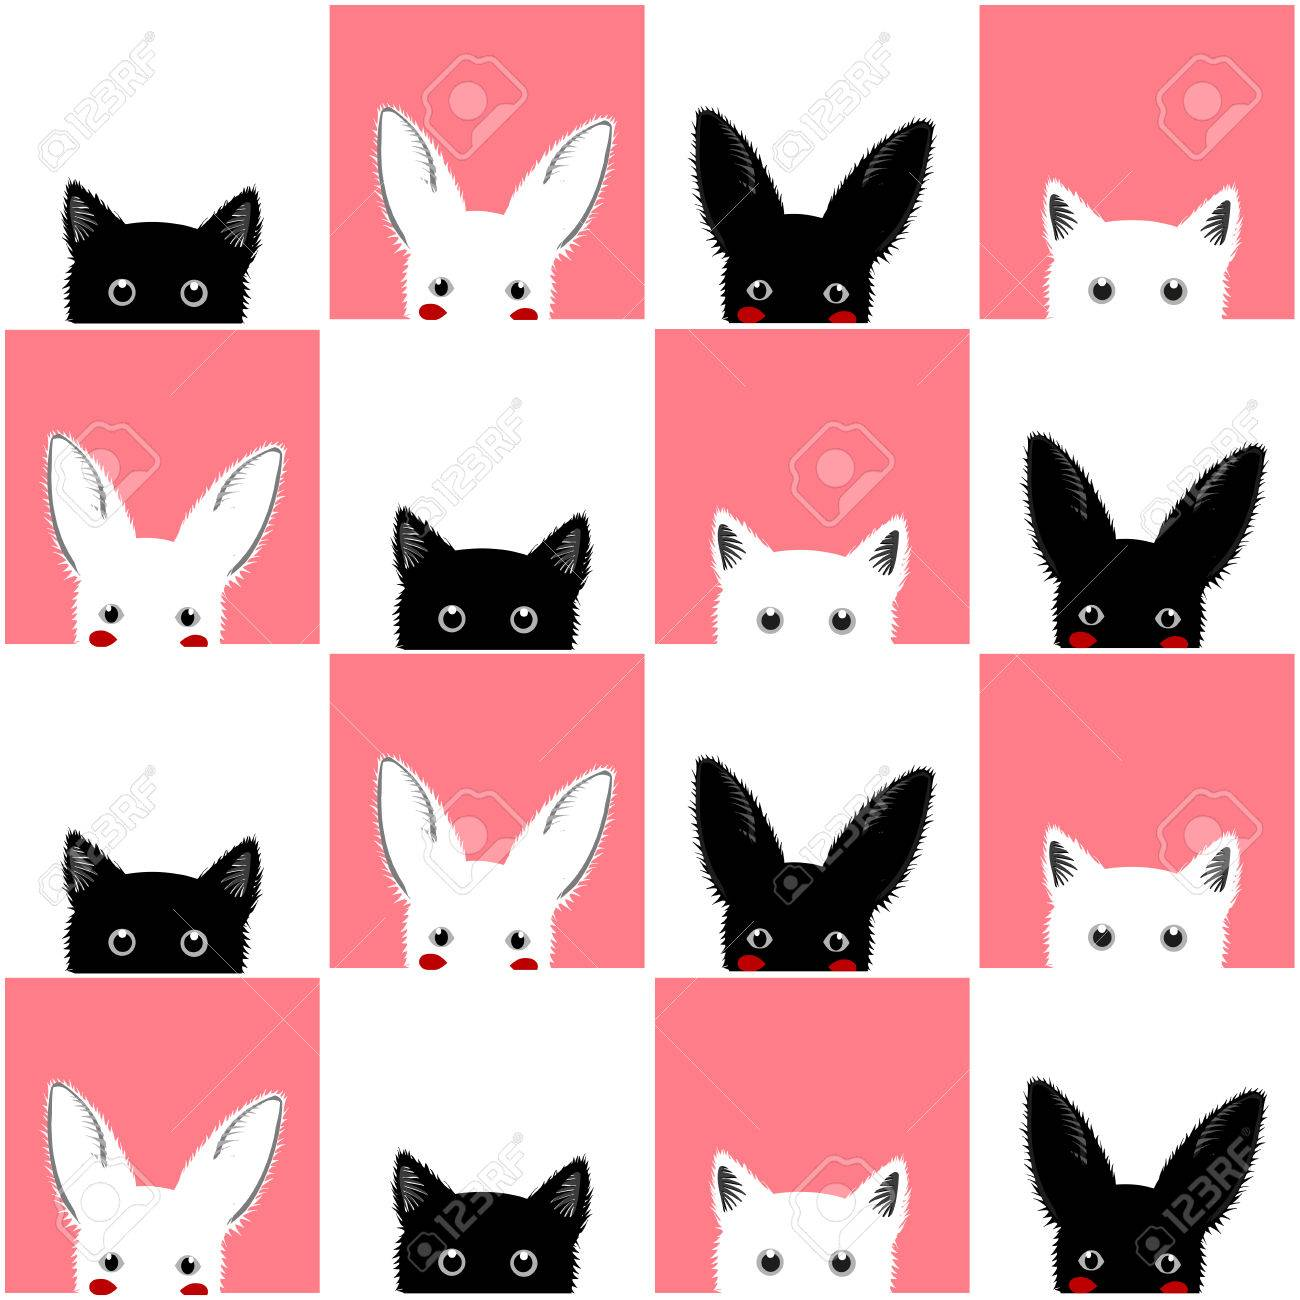 Black white pink cat rabbit chess board background vector illustration stock vector 52207018